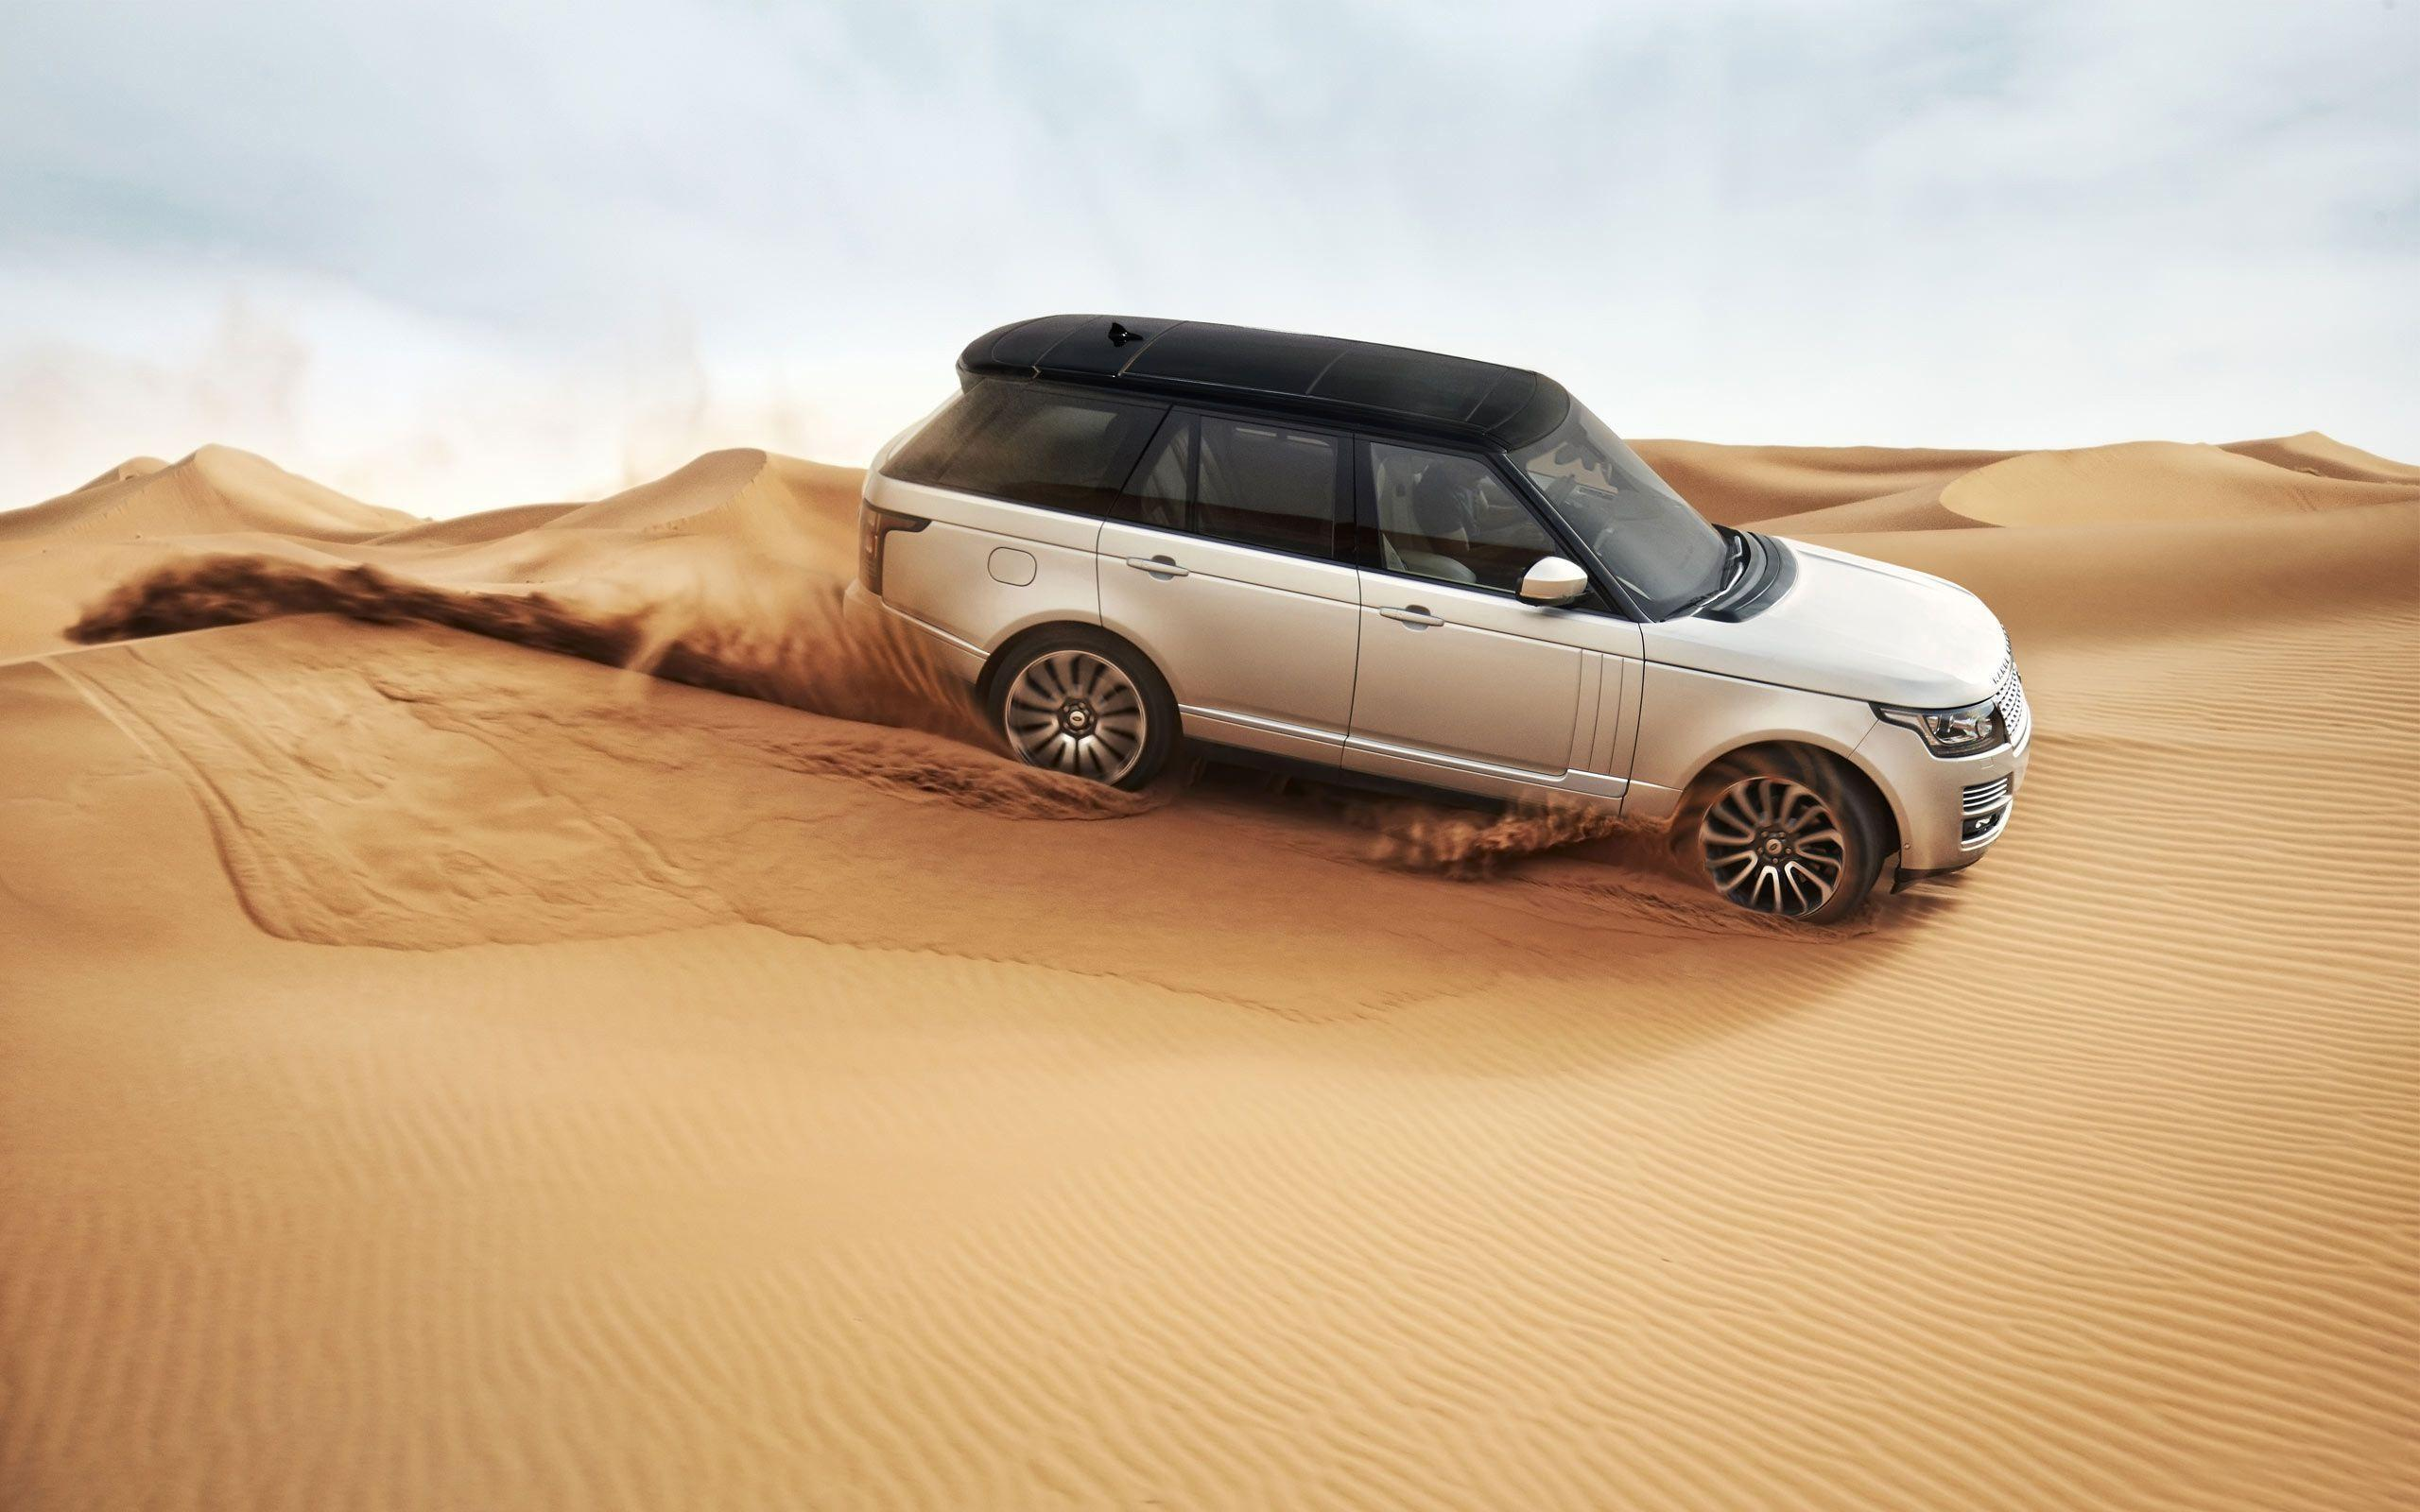 2013 Land Rover Range Rover Wallpapers